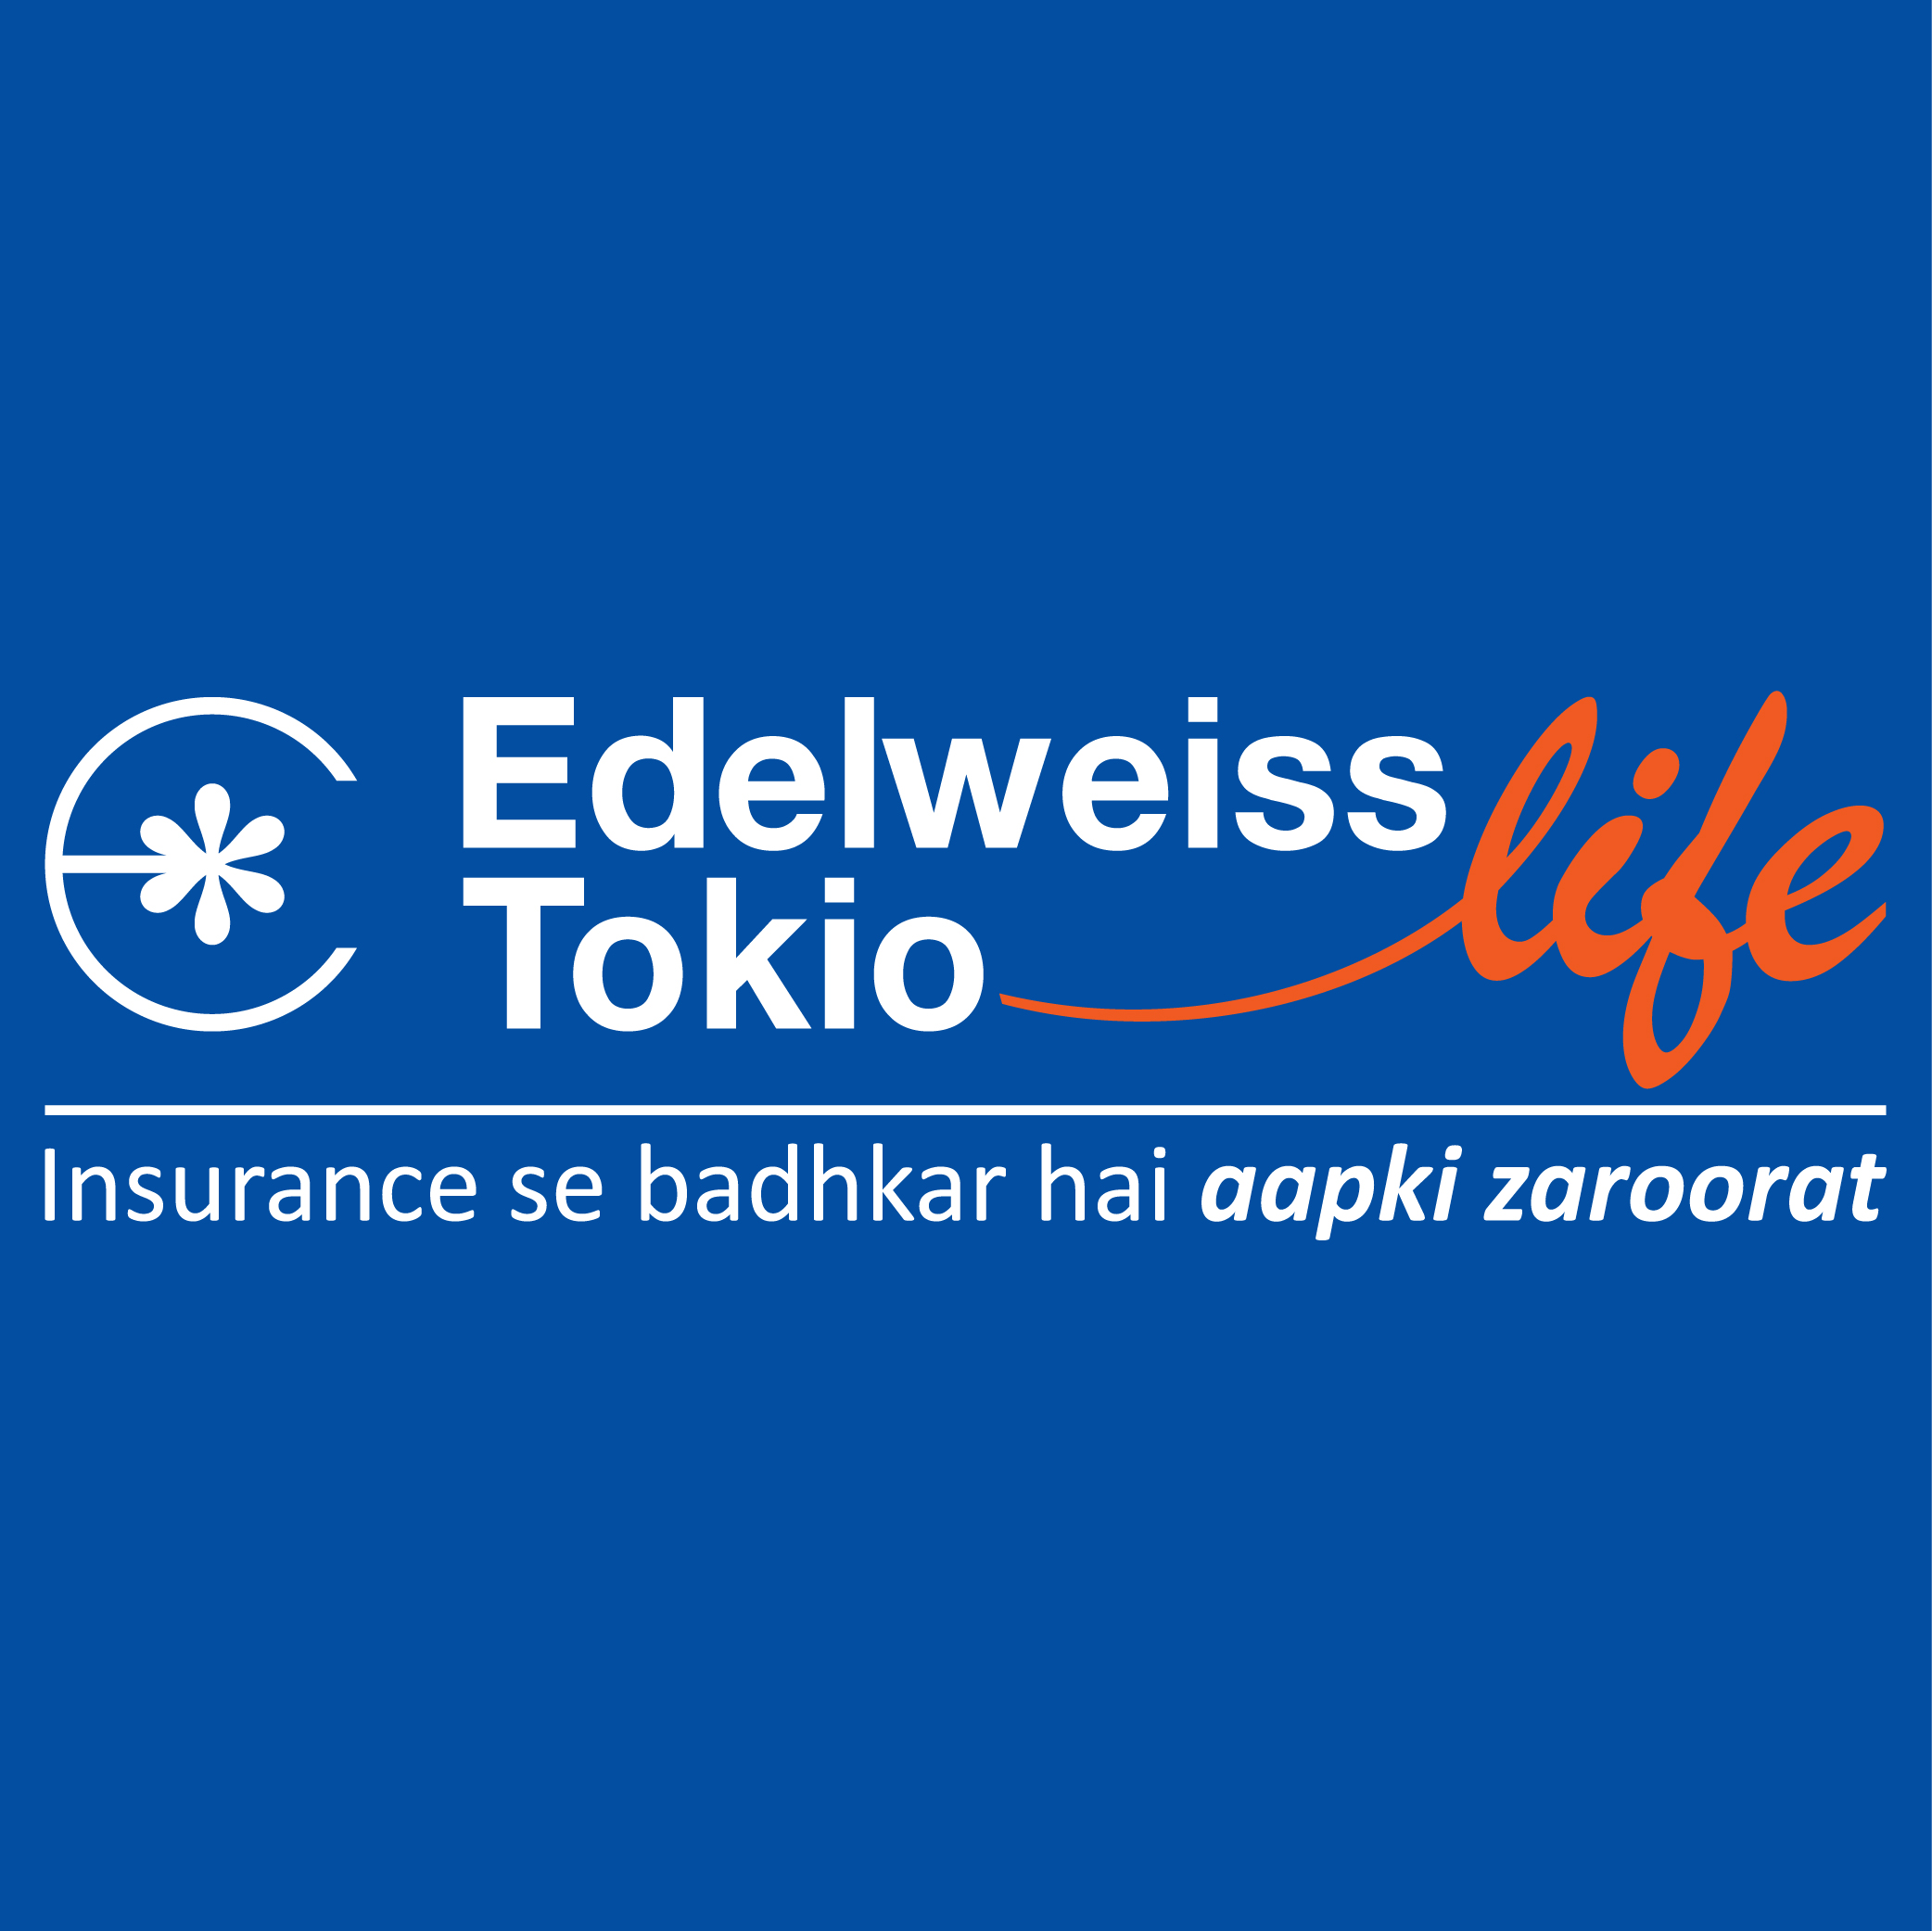 Edelweiss Tokio Life Insurance Image